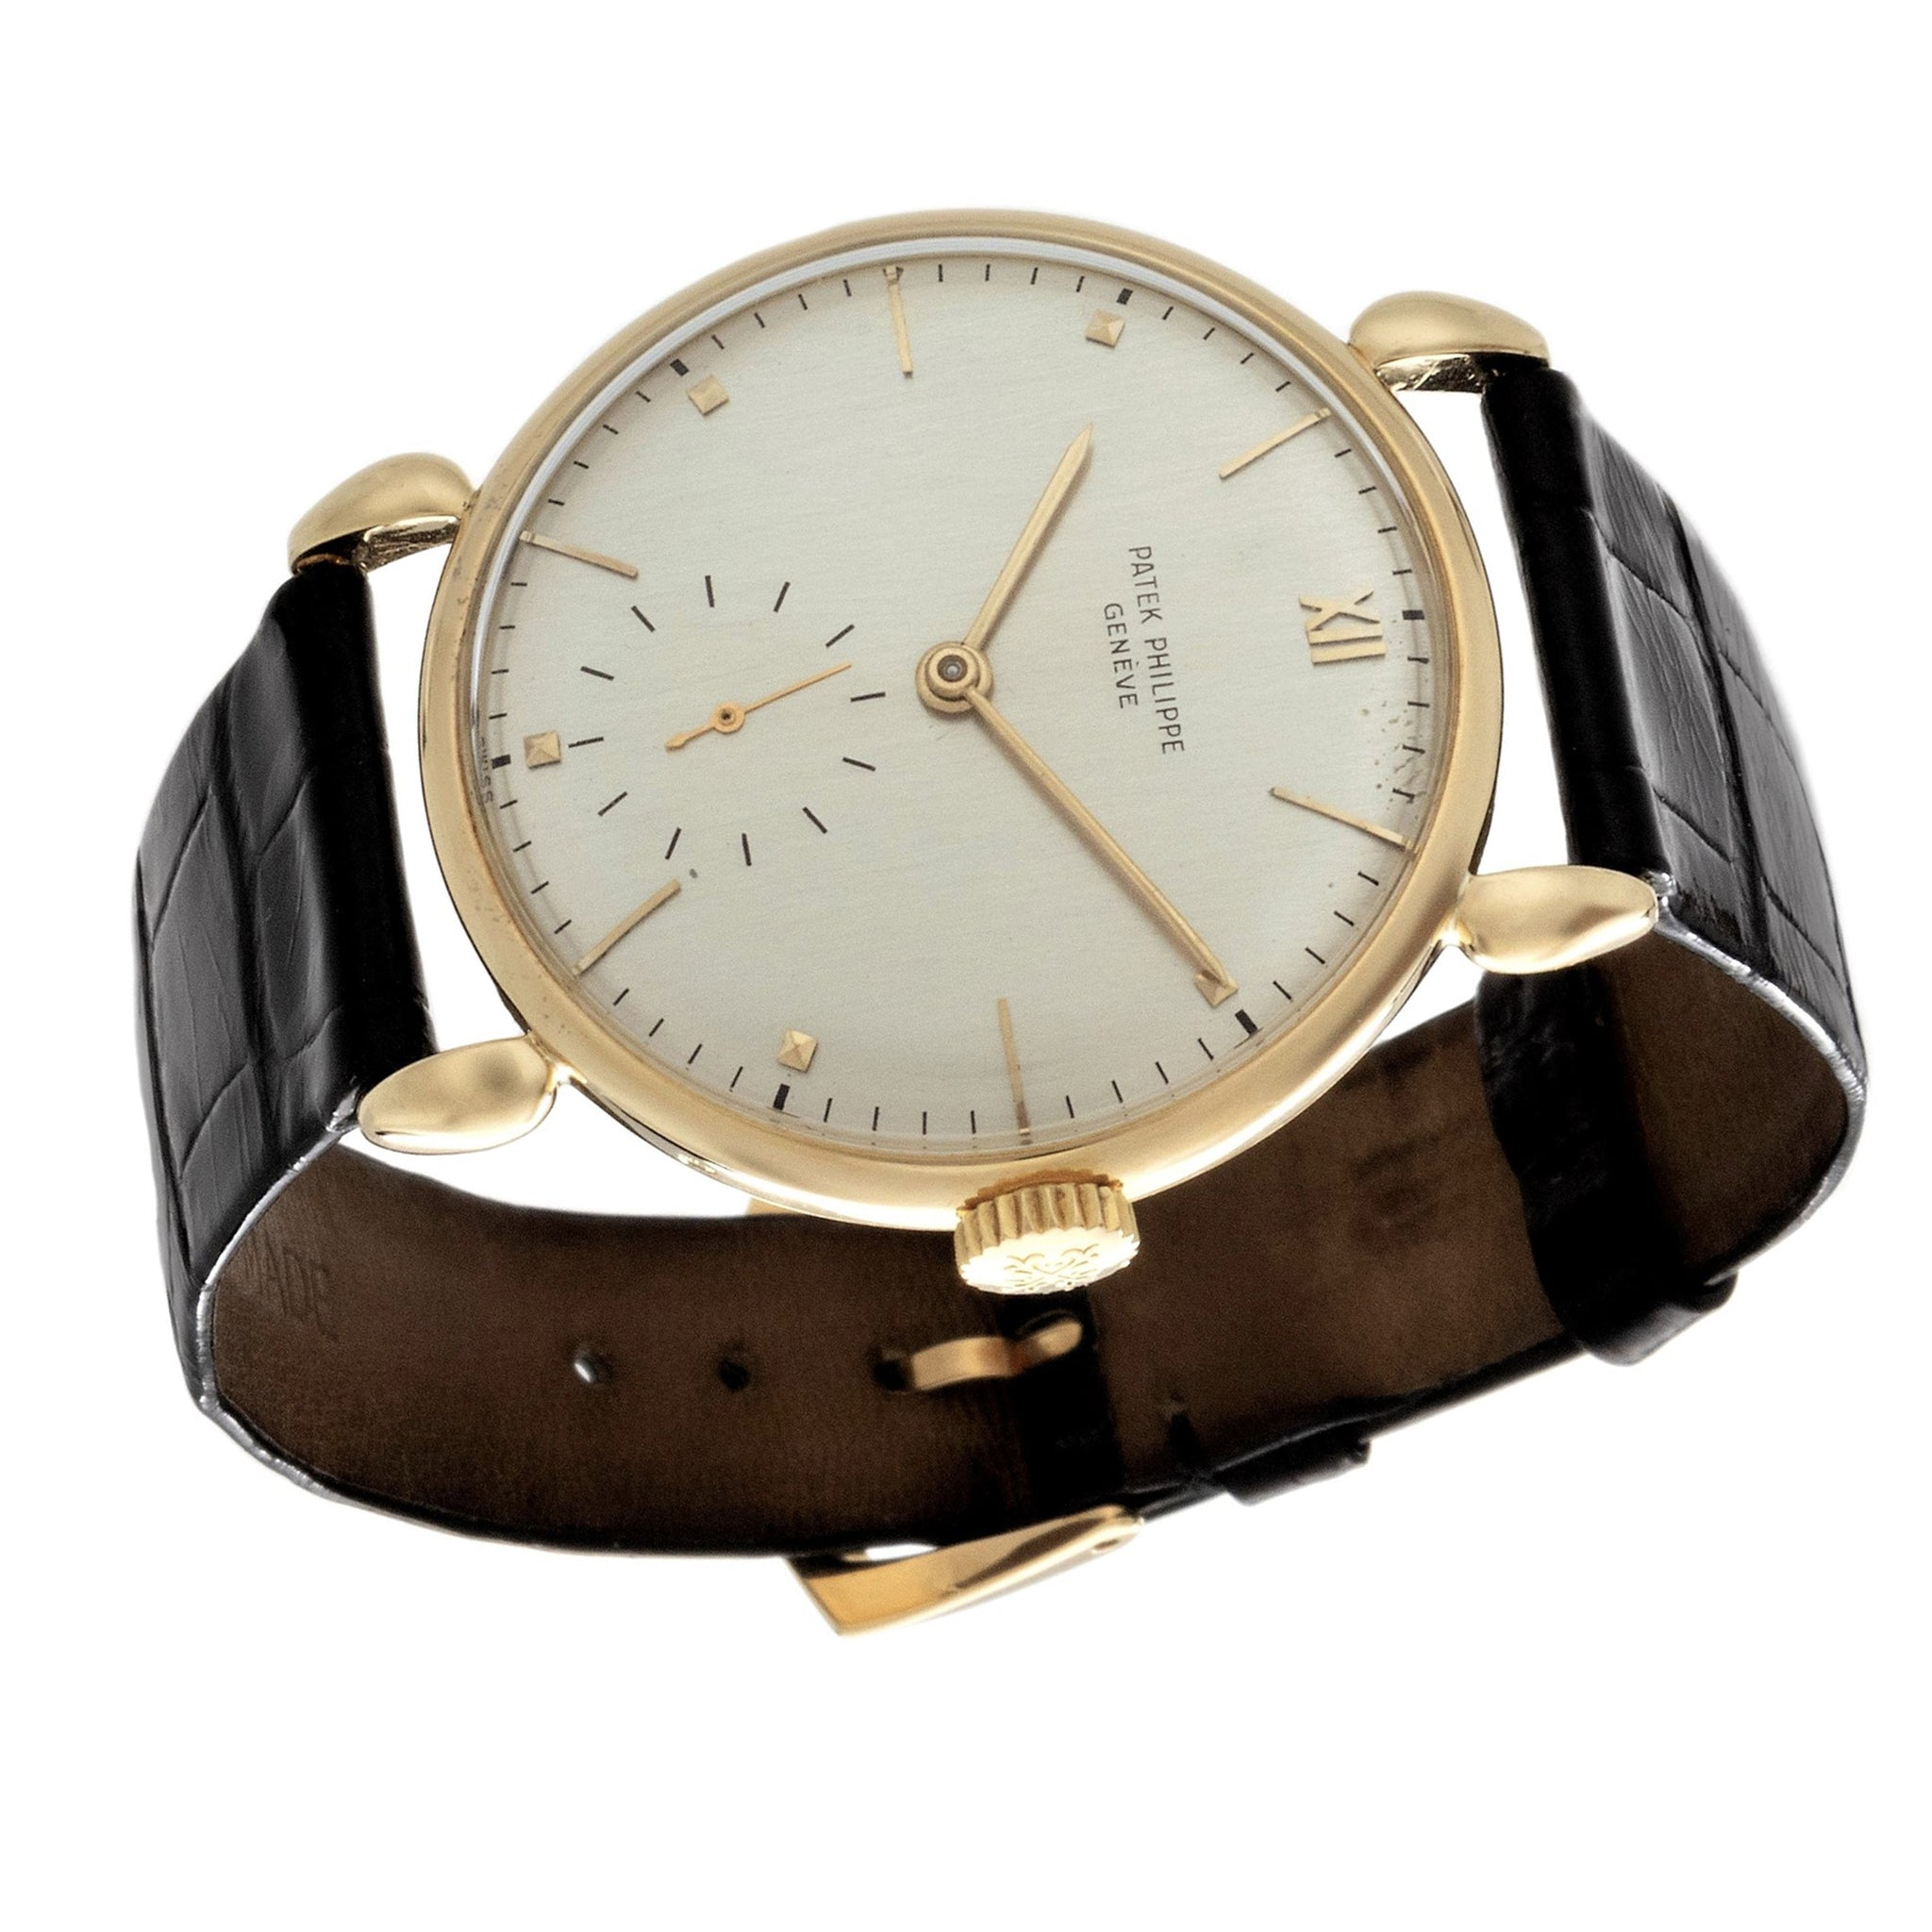 Patek Philippe 1509J Calatrava Watch Circa 1945